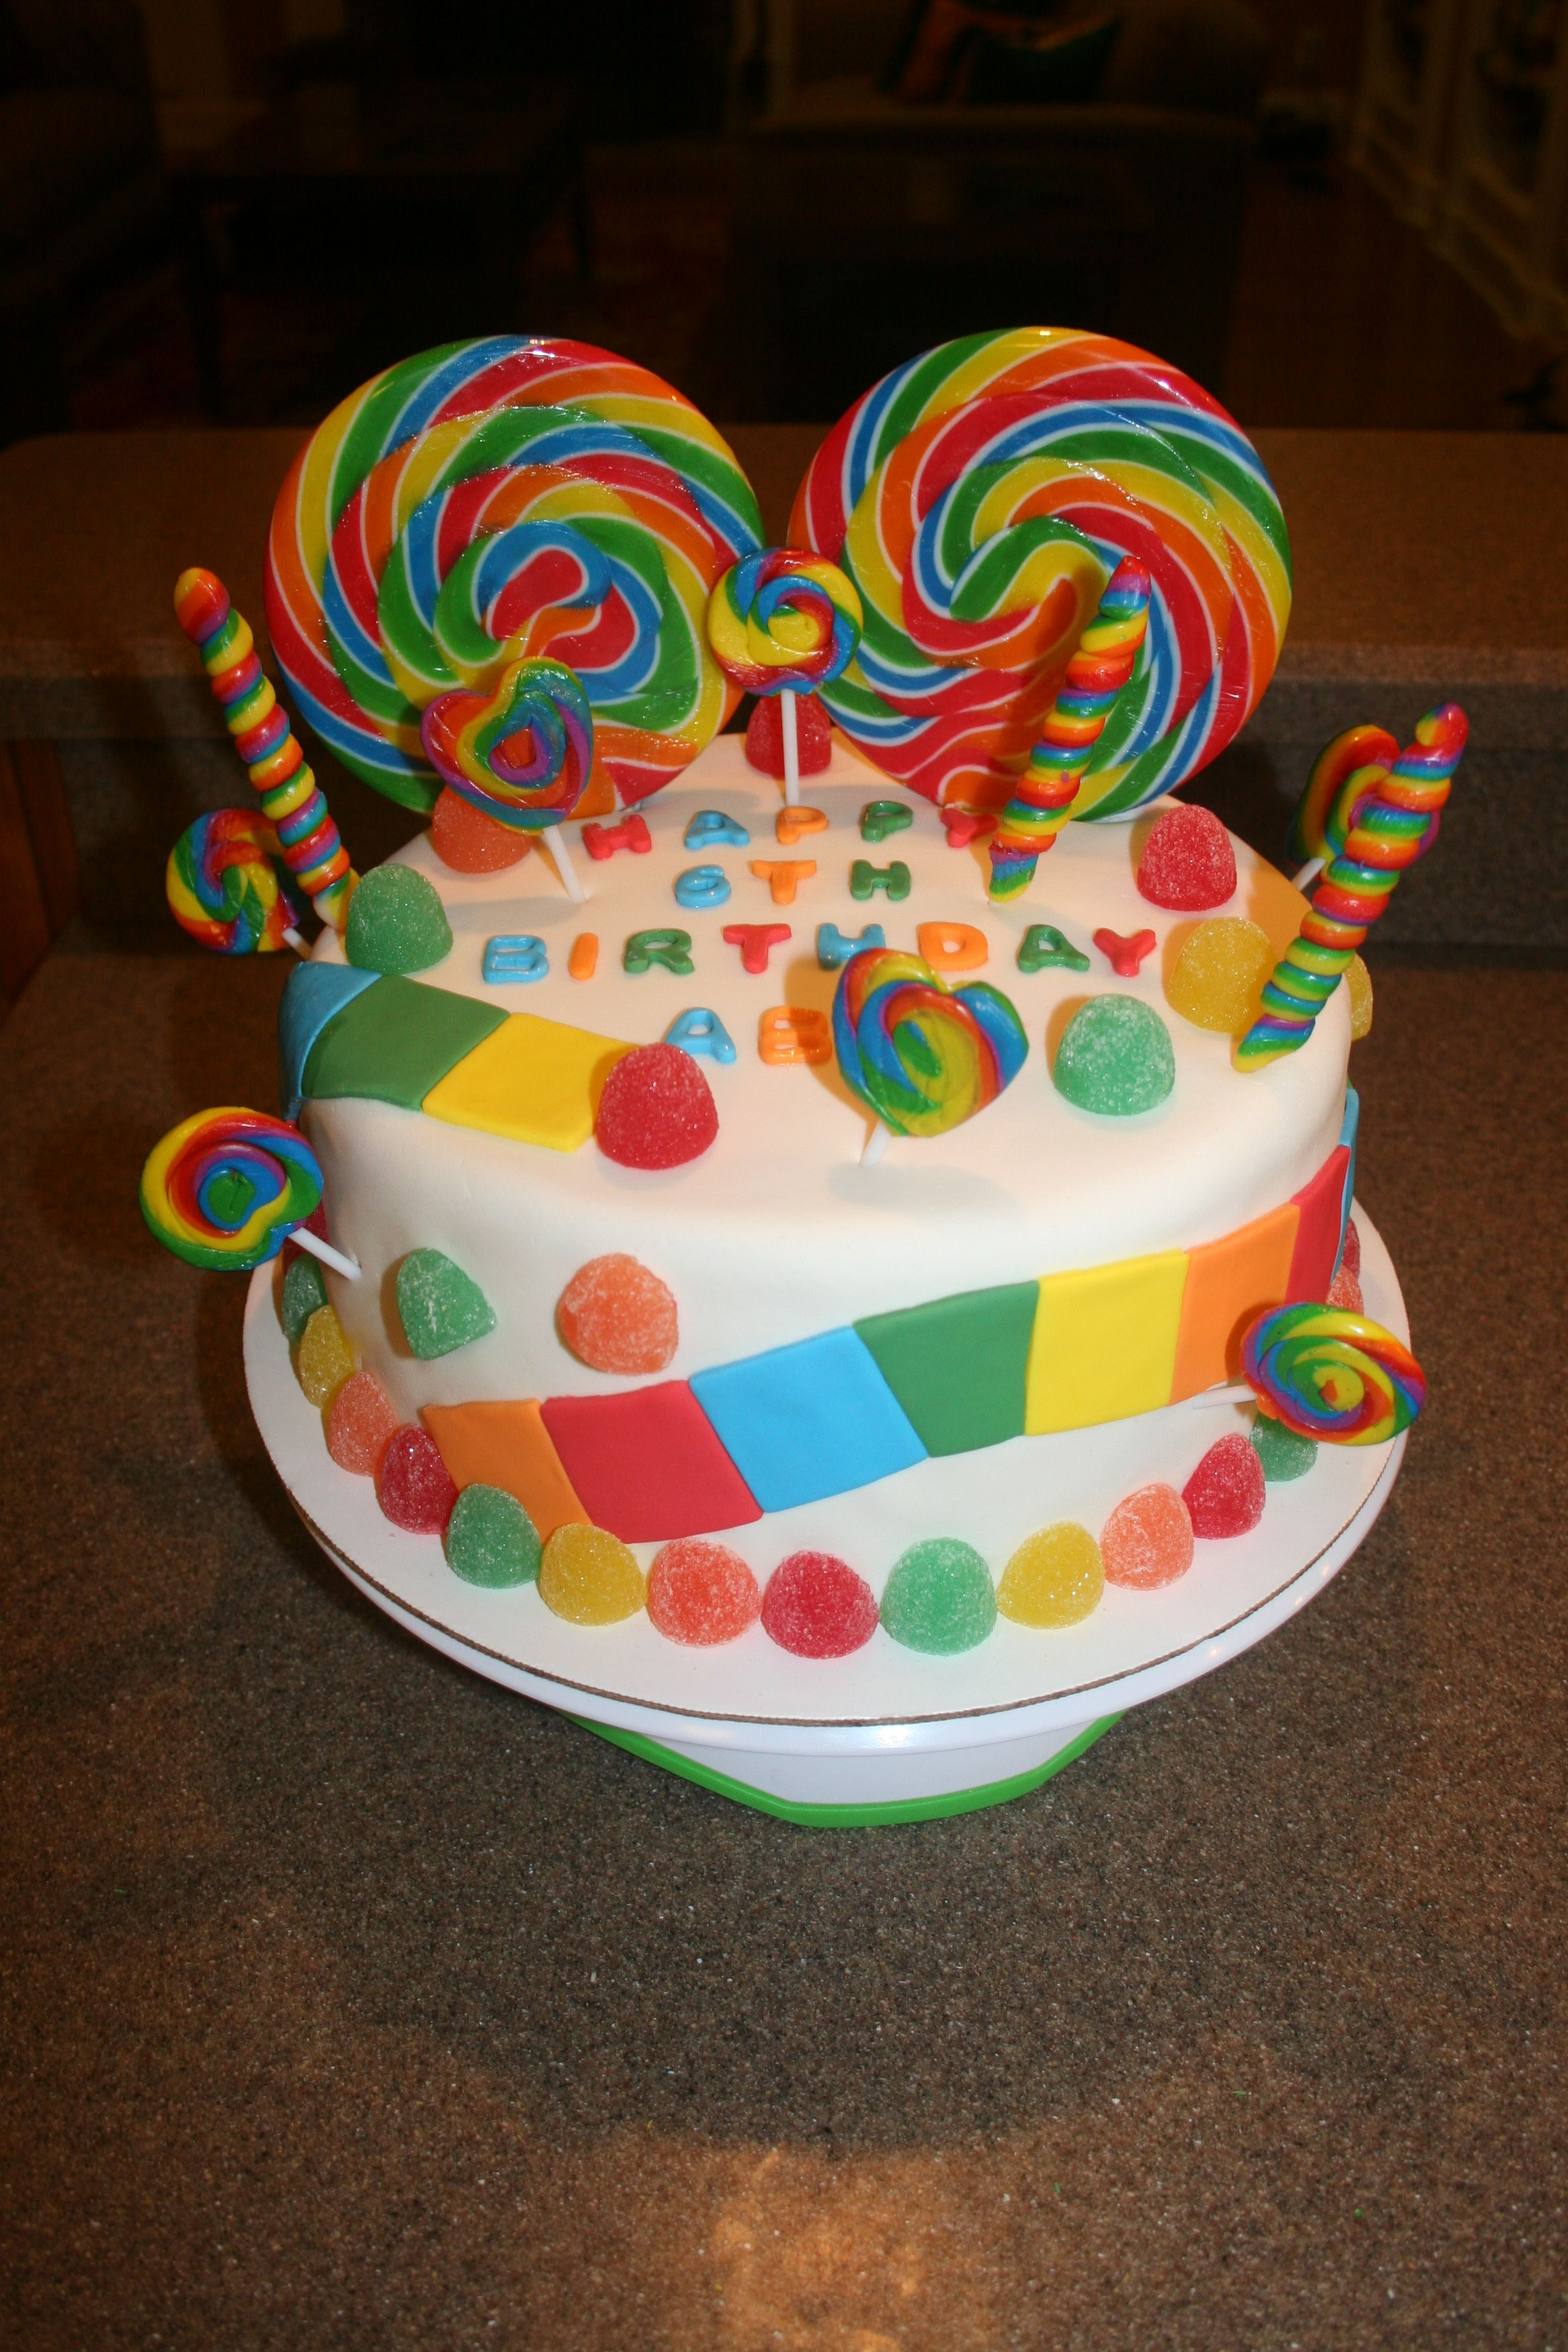 Candyland / Candy Birthday Cake http://www.facebook.com ...